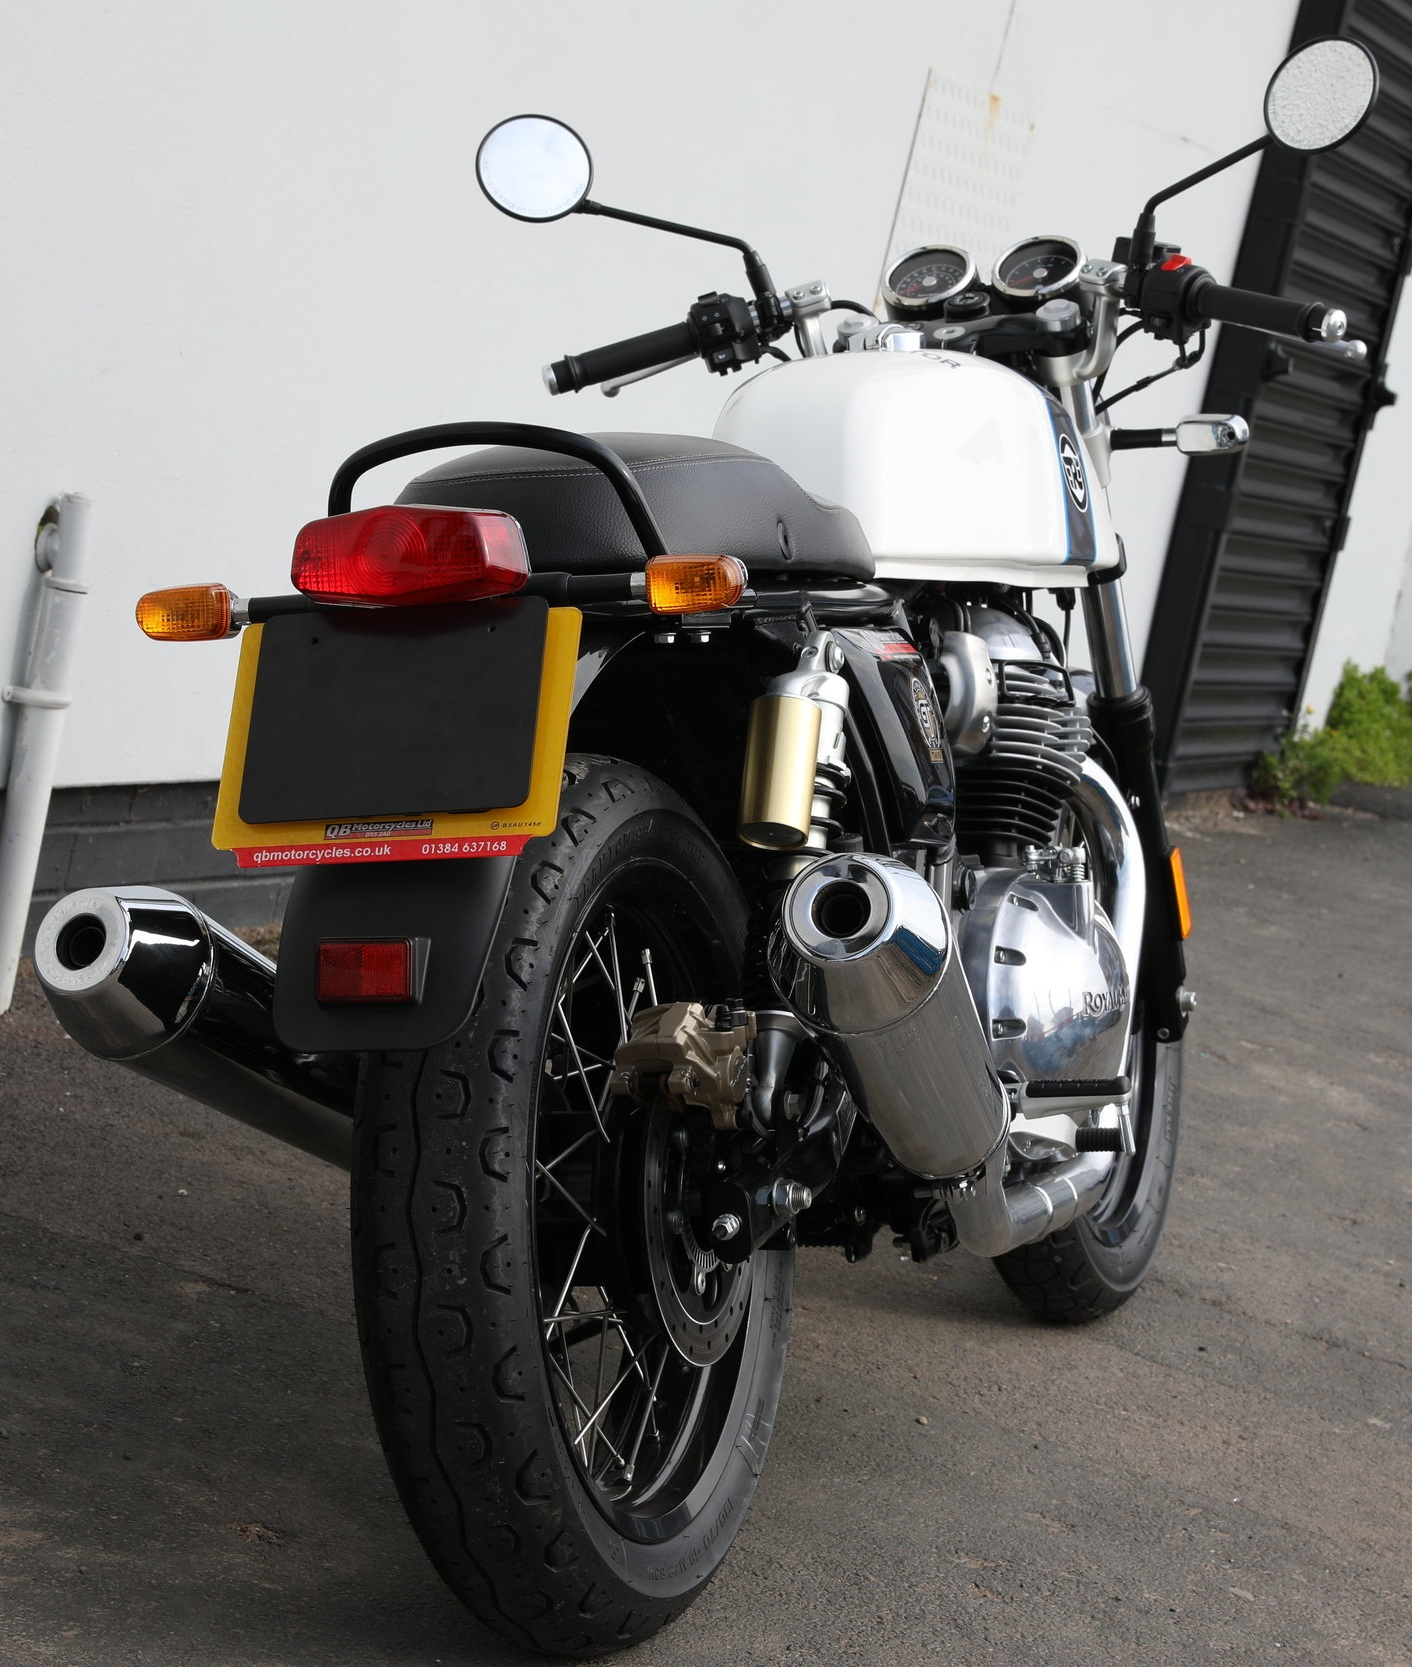 ROYAL ENFIELD CONTINENTAL GT 650 (2018-ON)